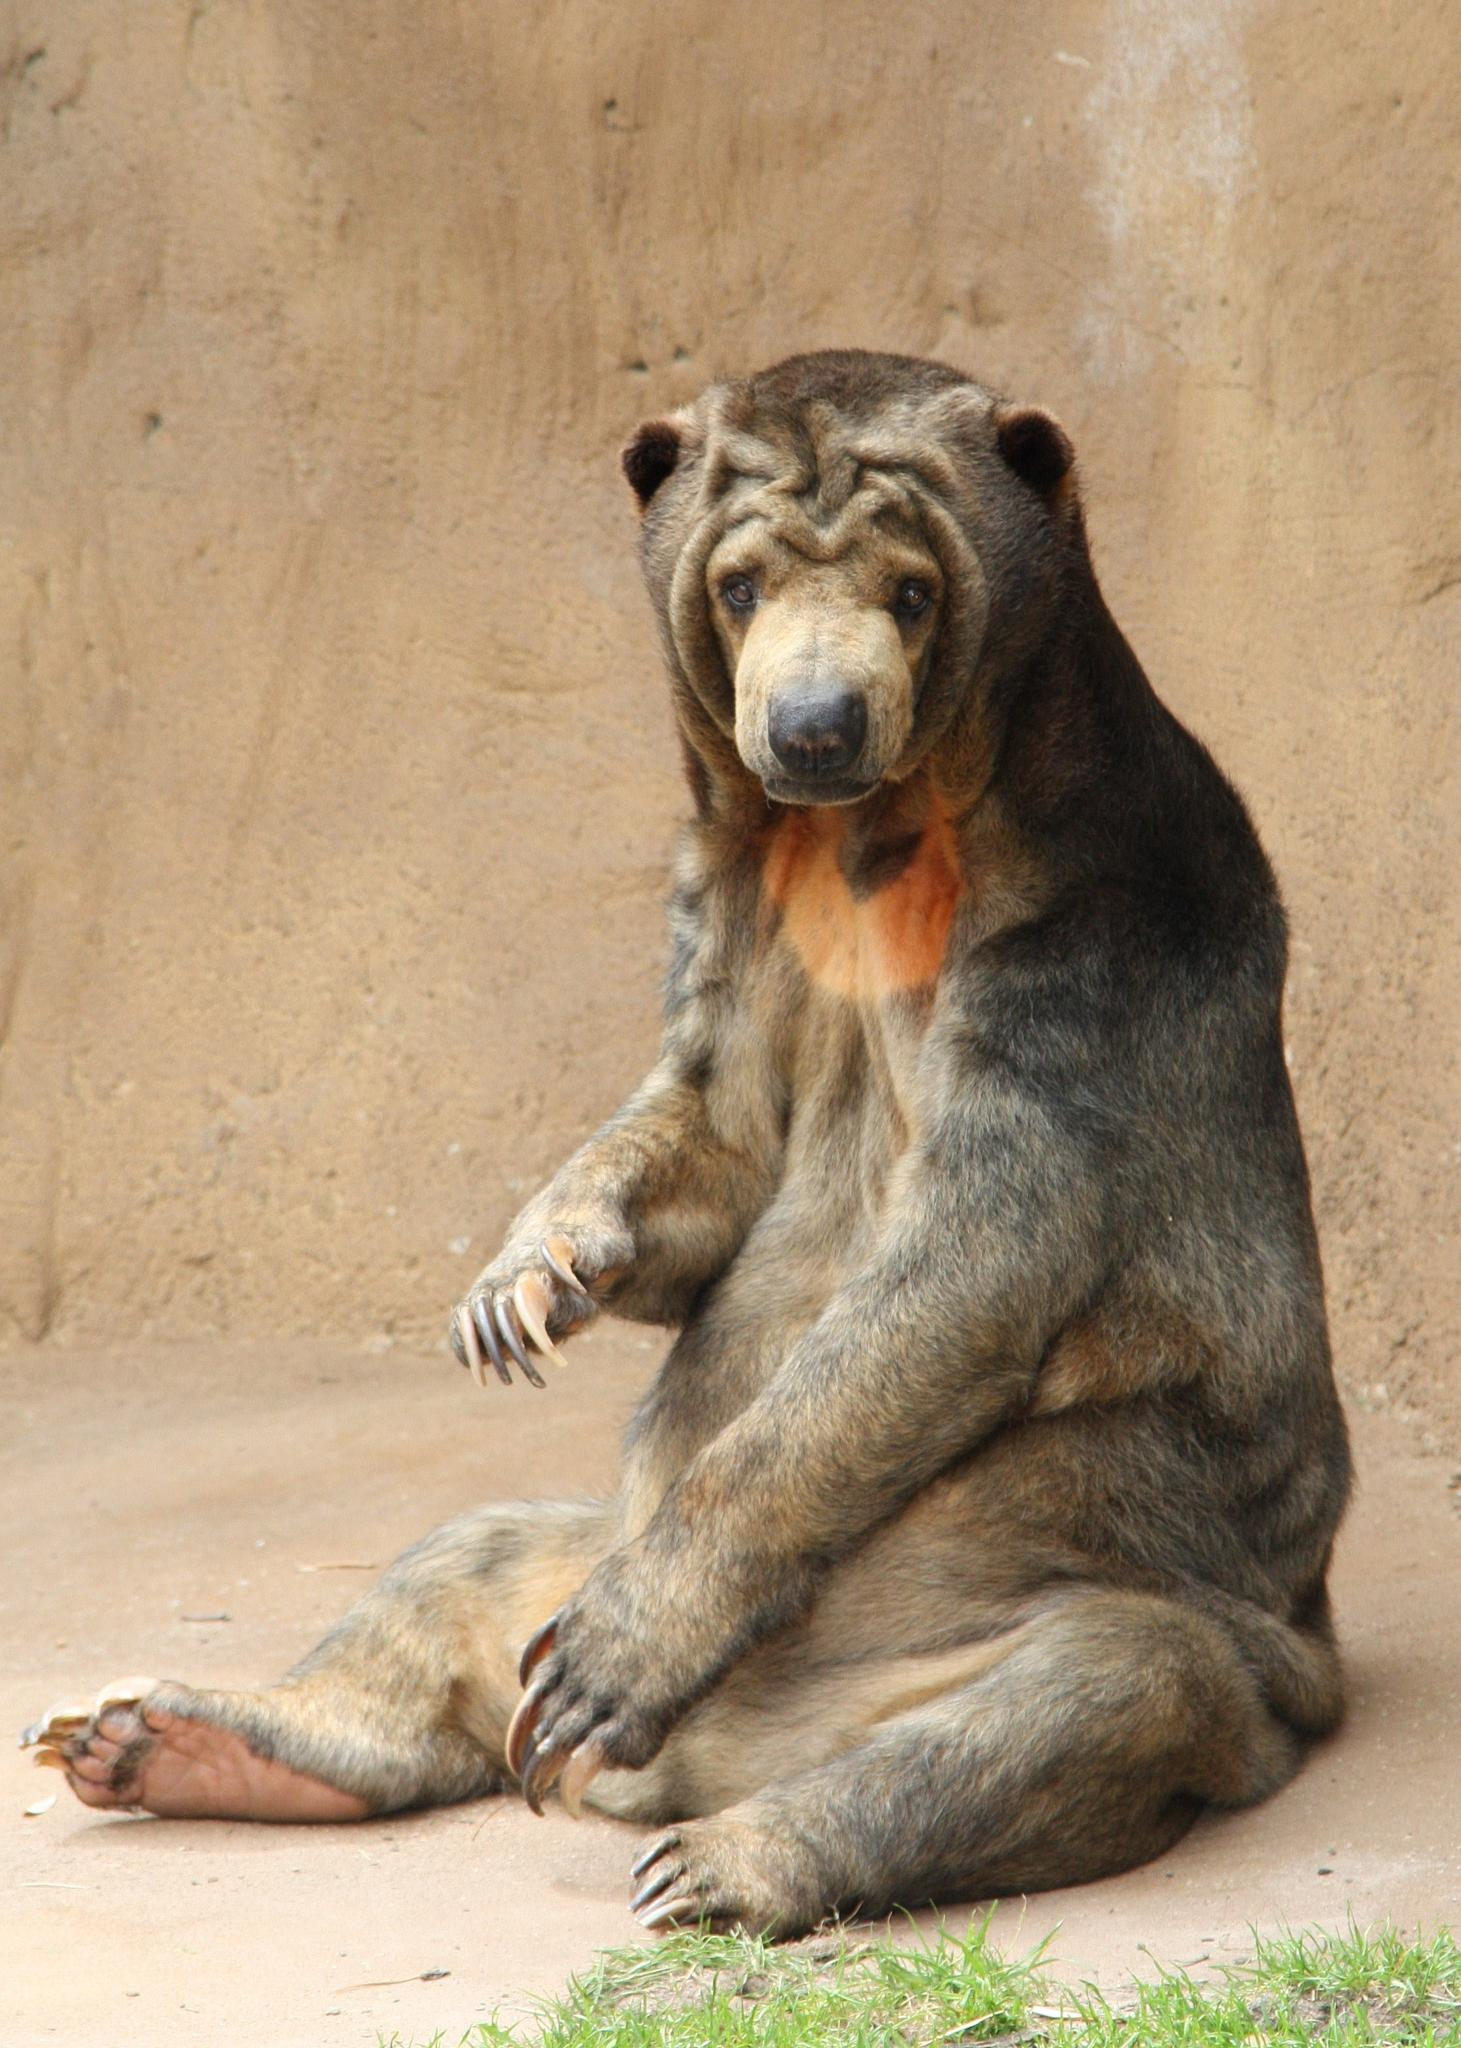 Bear at the Little Rock Zoo by Nicole Bixby